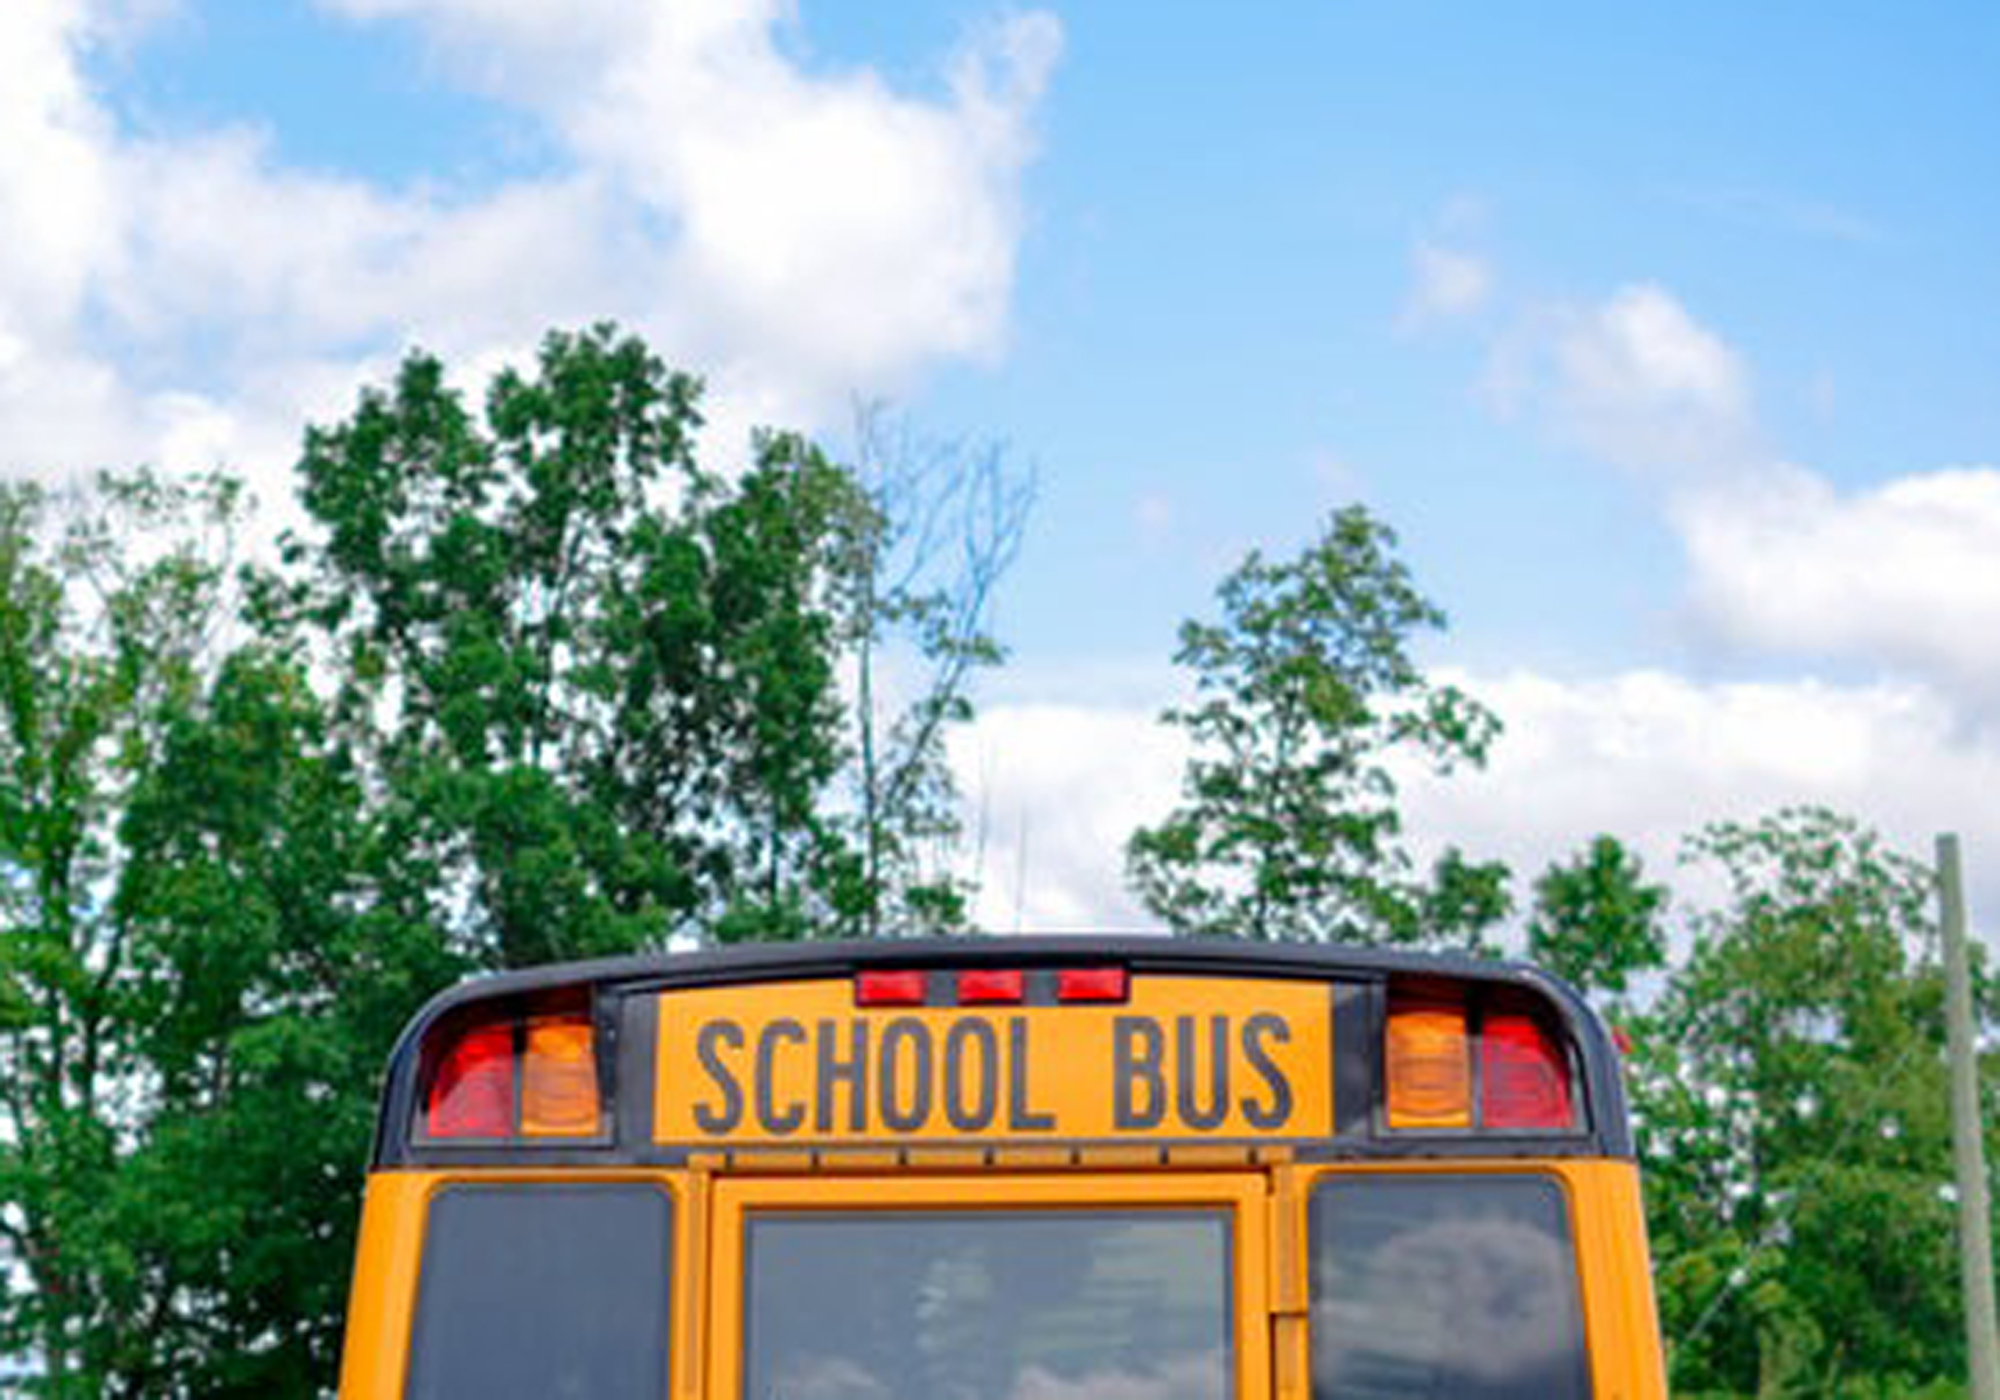 The Crowe Memorial Fund at HCCF Awards Grant for Safety Training for Avon School Bus Drivers